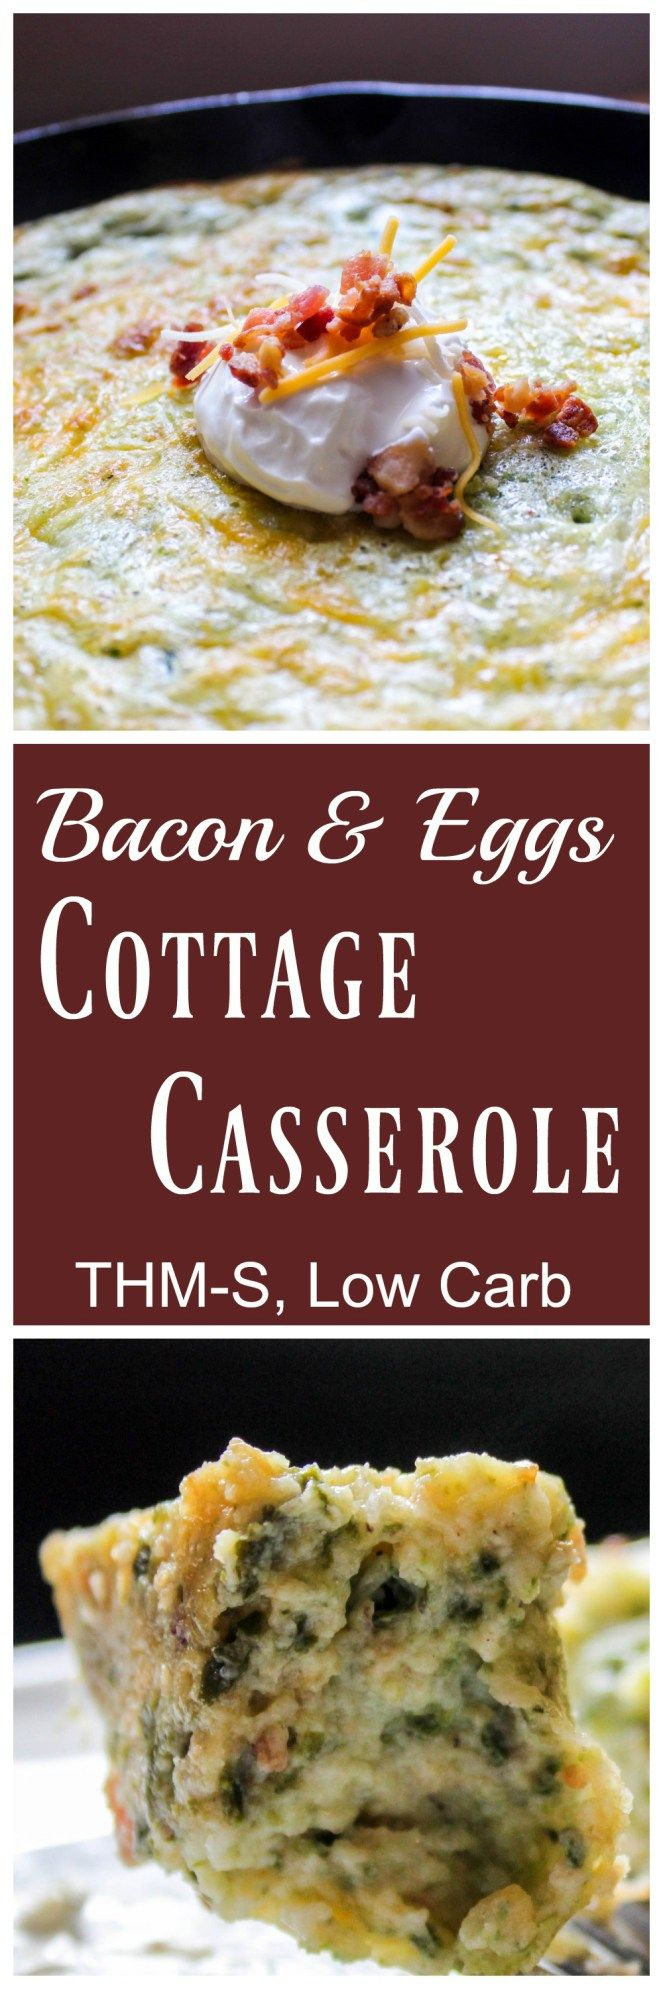 bacon and eggs cottage casserole thm s low carb my montana rh pinterest com